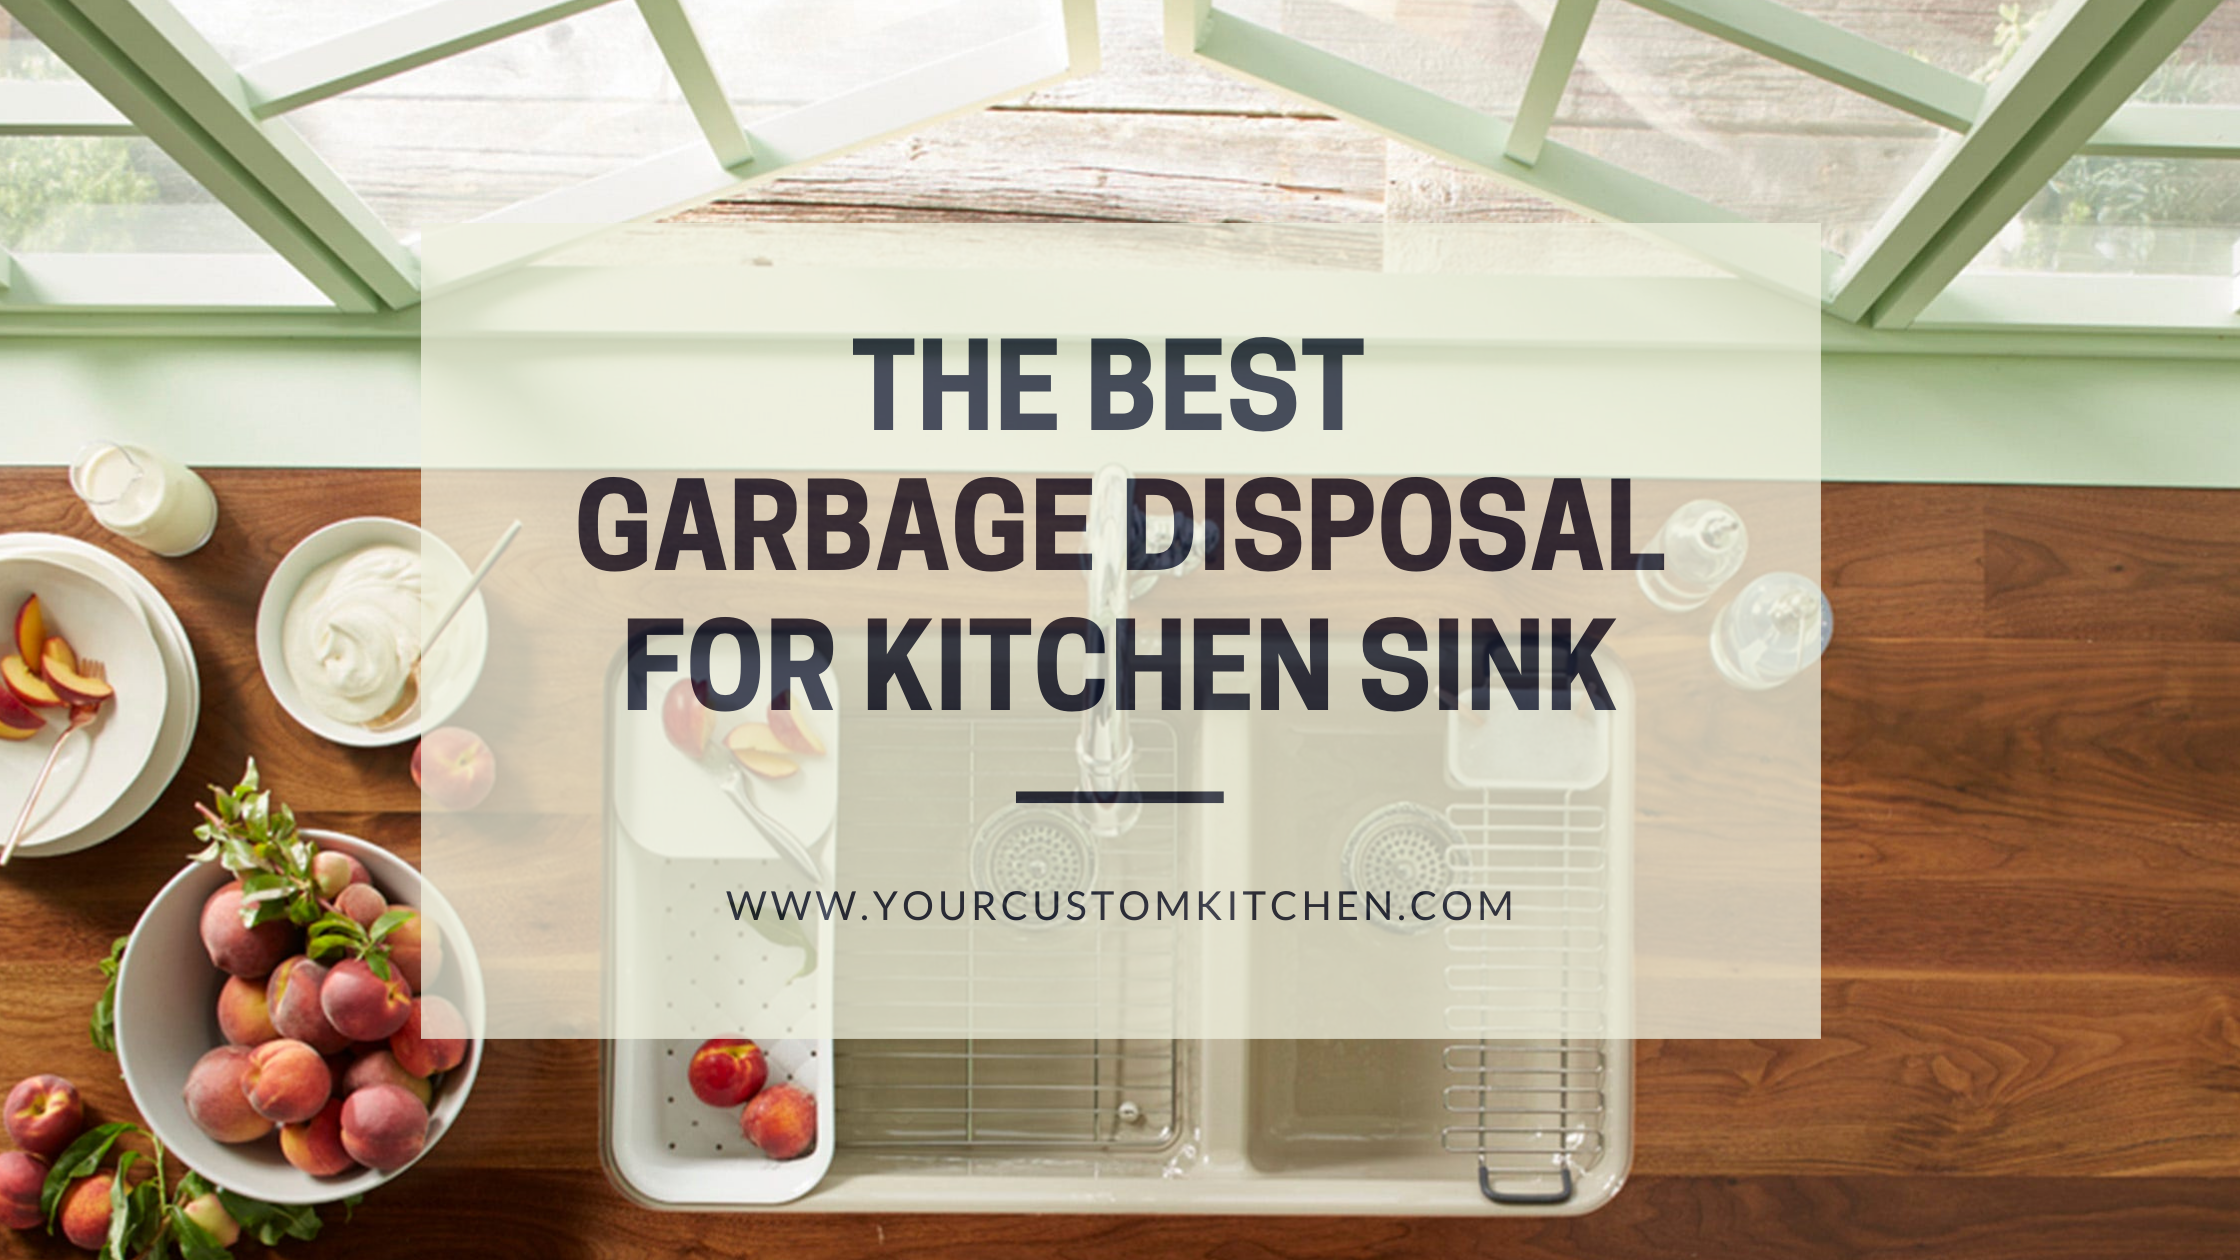 The Best Garbage Disposal For Kitchen Sink